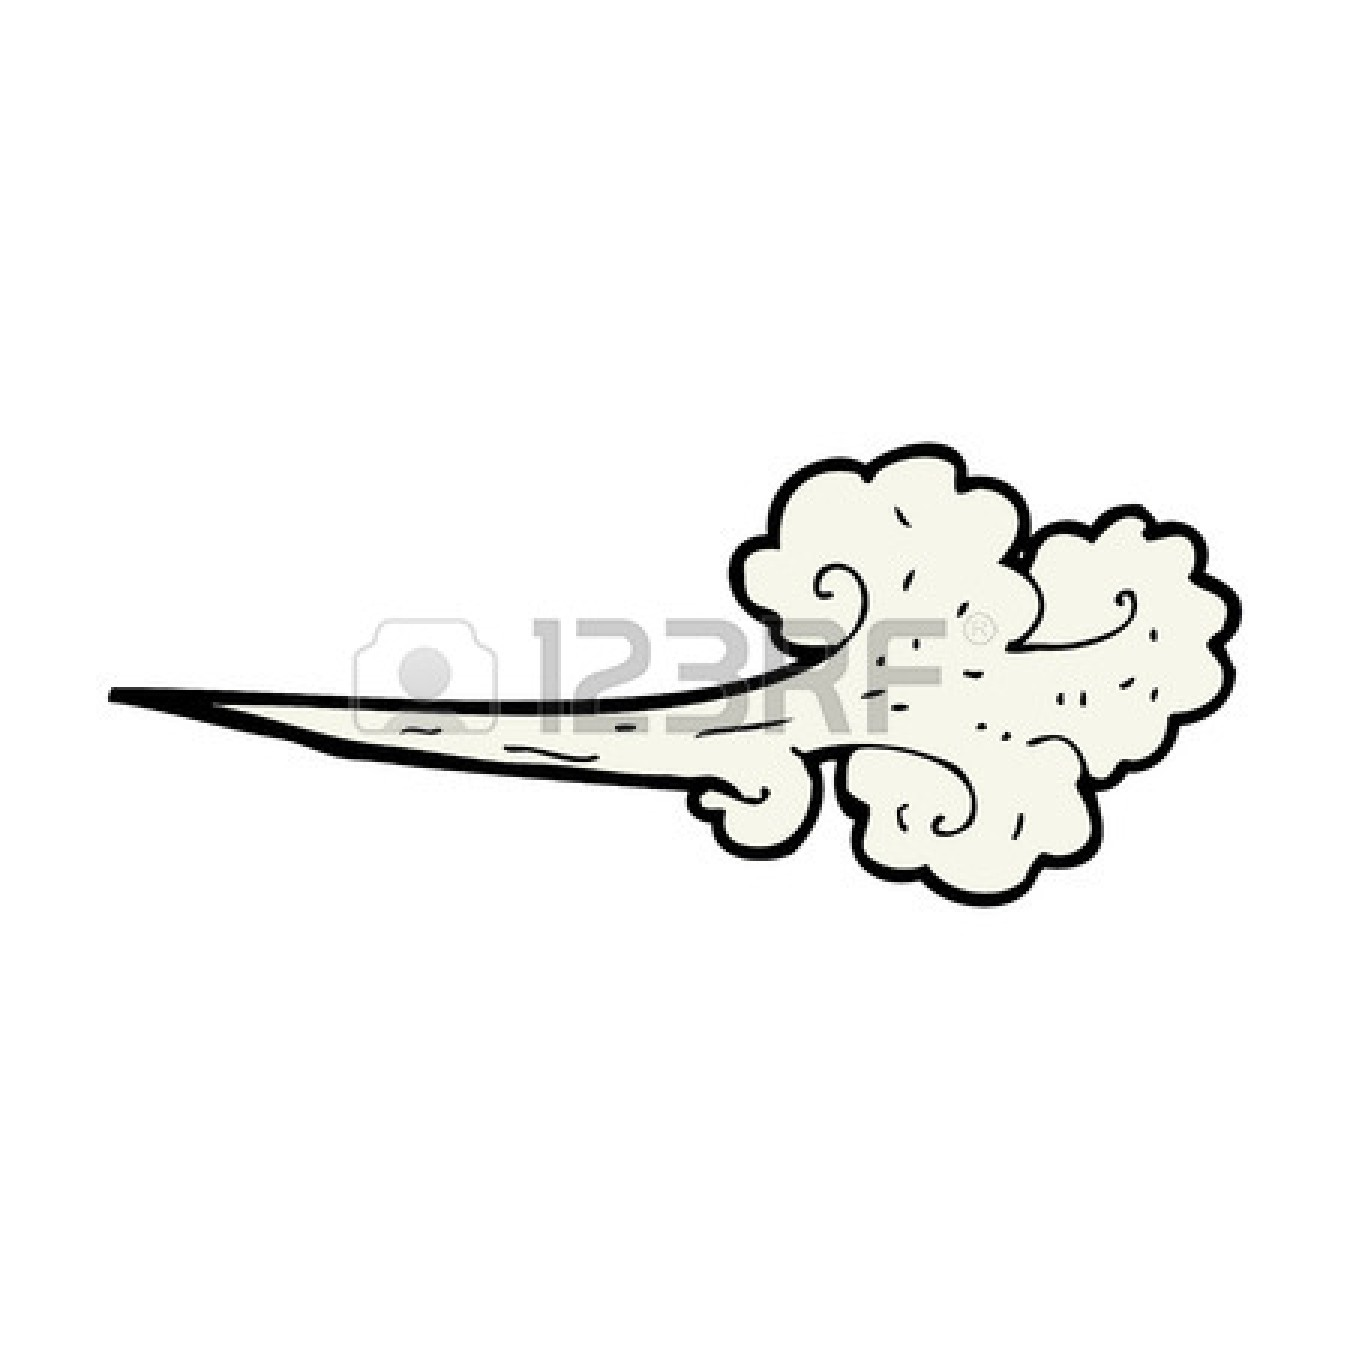 Wind blow marks clipart clip freeuse library Blowing Cliparts | Free download best Blowing Cliparts on ... clip freeuse library